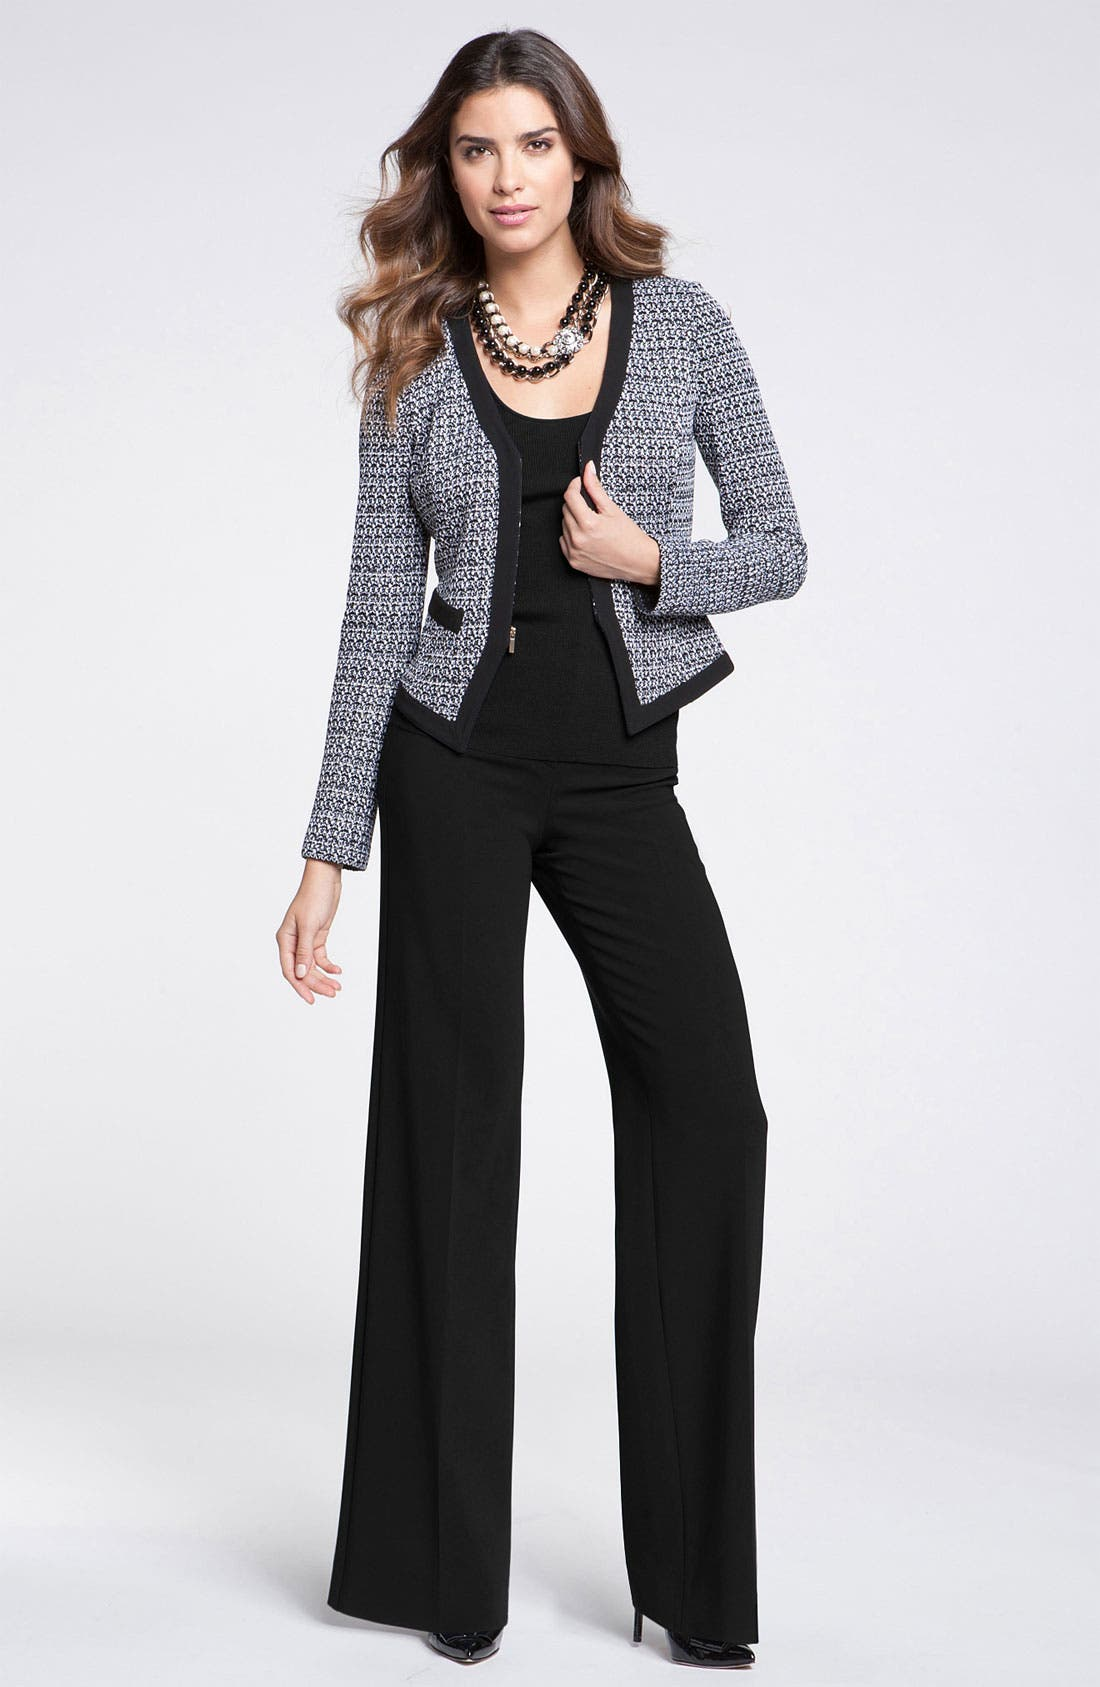 Main Image - St. John Collection Tweed Jacket & Wide Leg Pants